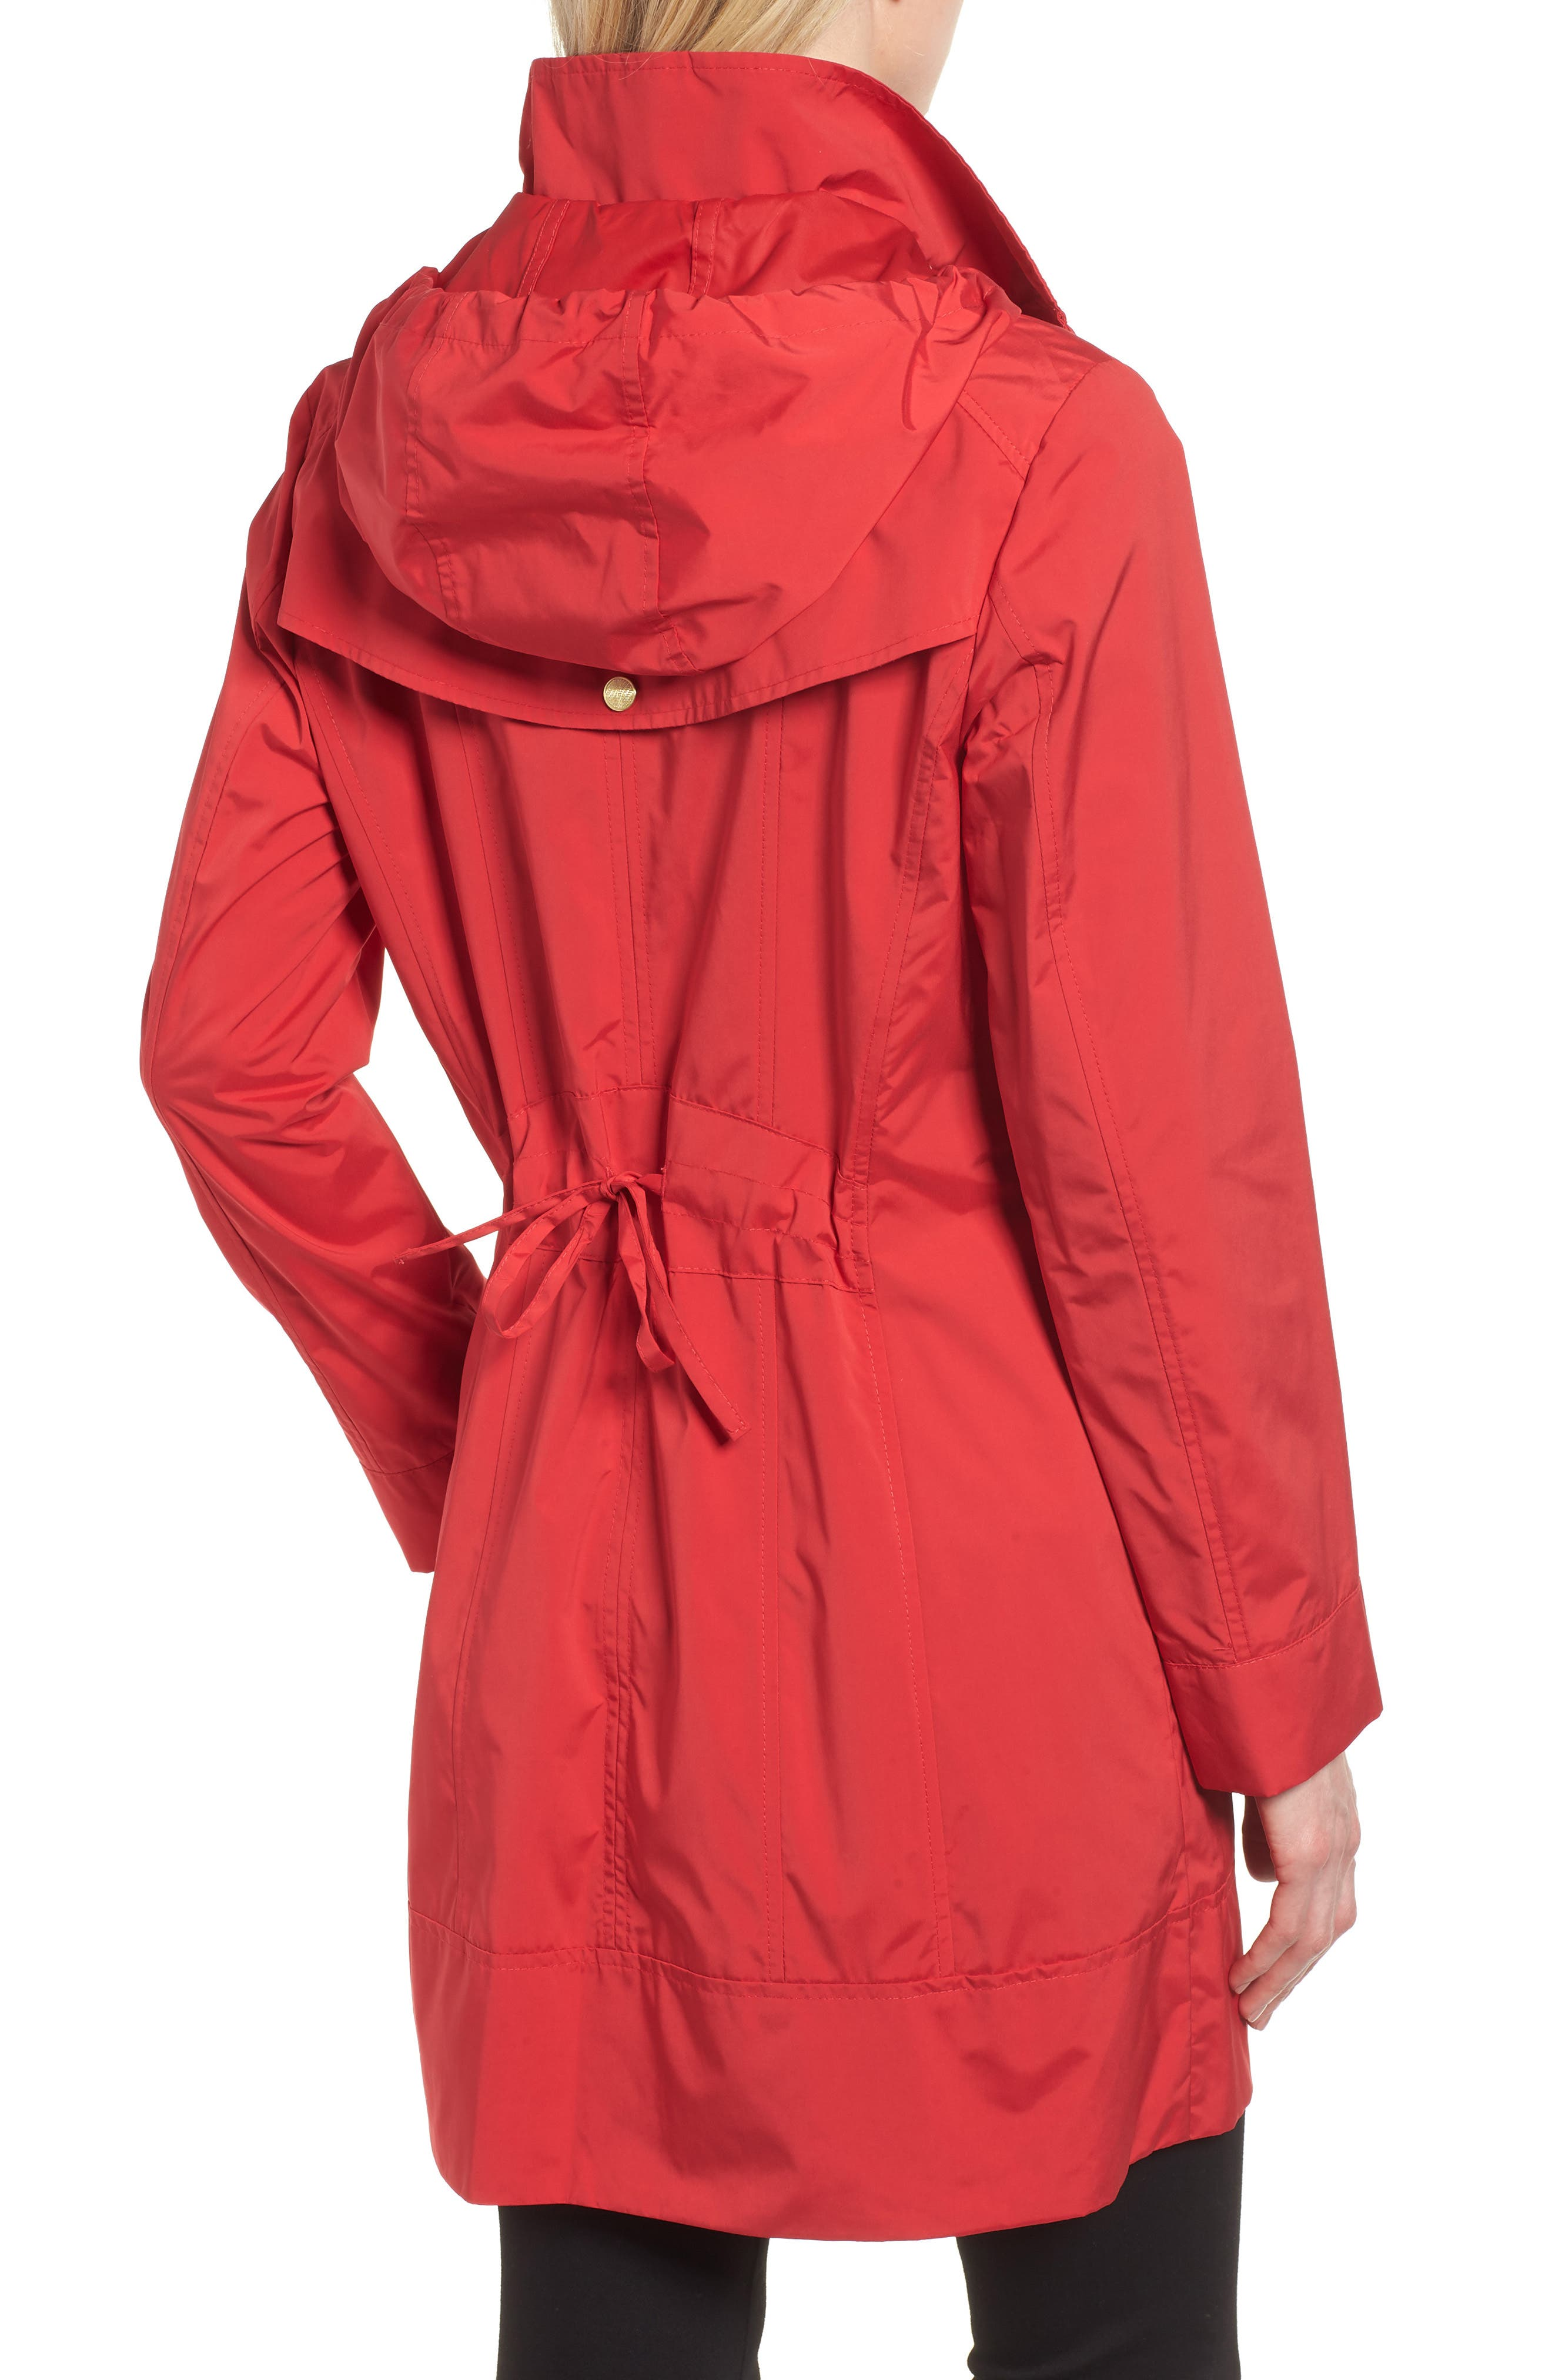 Back Bow Packable Hooded Raincoat,                             Alternate thumbnail 2, color,                             Red